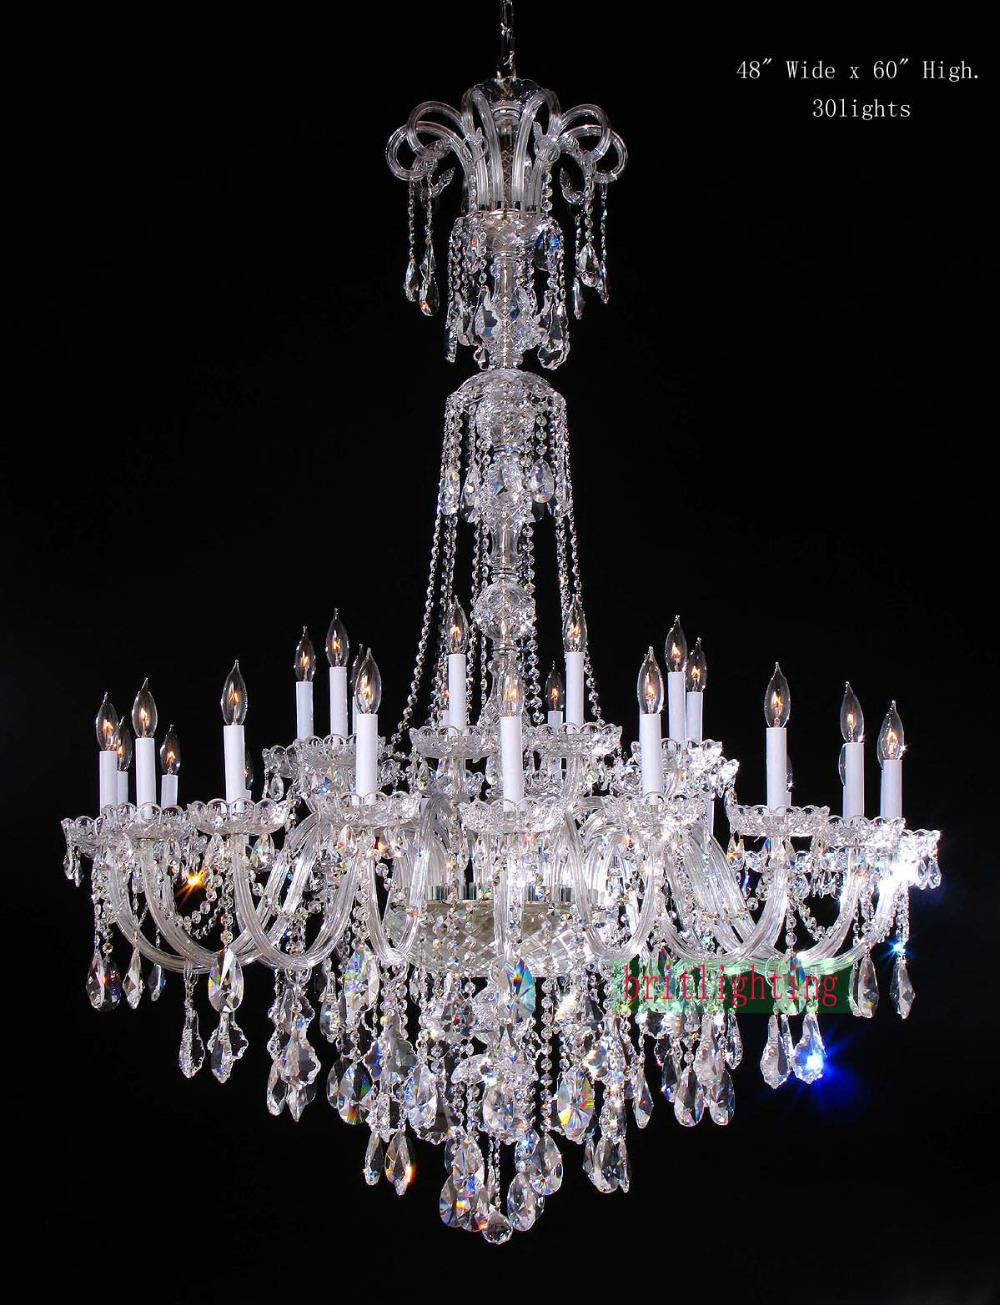 Lamp modern crystal chandeliers 5 star hotel chandelier led crystal lamp modern crystal chandeliers 5 star hotel chandelier led crystal candle chandeliers large elegant crystal chandelier foyer luxury chandeliers crystal aloadofball Images